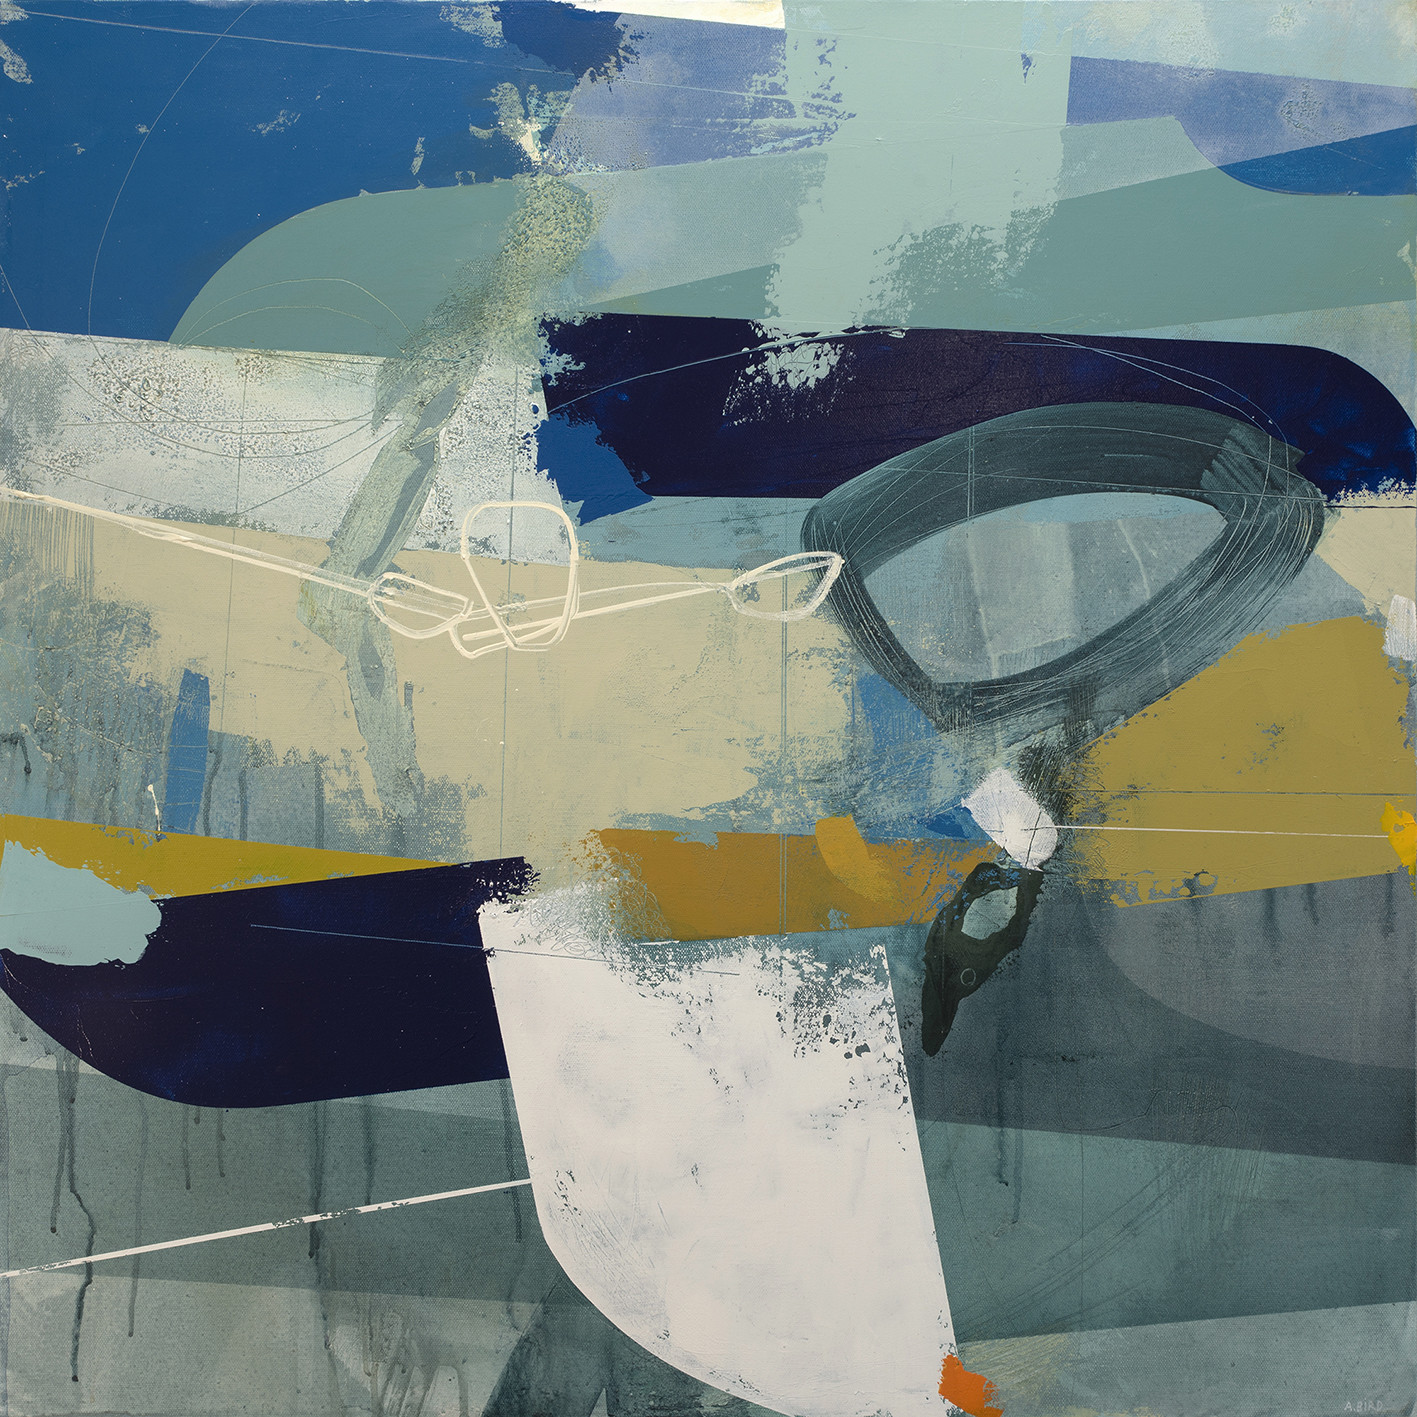 <span class=&#34;link fancybox-details-link&#34;><a href=&#34;/artists/77-andrew-bird/works/6207-andrew-bird-tethered-2019/&#34;>View Detail Page</a></span><div class=&#34;artist&#34;><strong>Andrew Bird</strong></div> <div class=&#34;title&#34;><em>Tethered</em>, 2019</div> <div class=&#34;signed_and_dated&#34;>signed, titled and dated on reverse</div> <div class=&#34;medium&#34;>acrylic on canvas</div> <div class=&#34;dimensions&#34;>h 76 x w 76 cm<br /> 29 7/8 x 29 7/8 in</div><div class=&#34;price&#34;>£2,500.00</div><div class=&#34;copyright_line&#34;>Own Art: £ 250 x 10 Months, 0% APR</div>